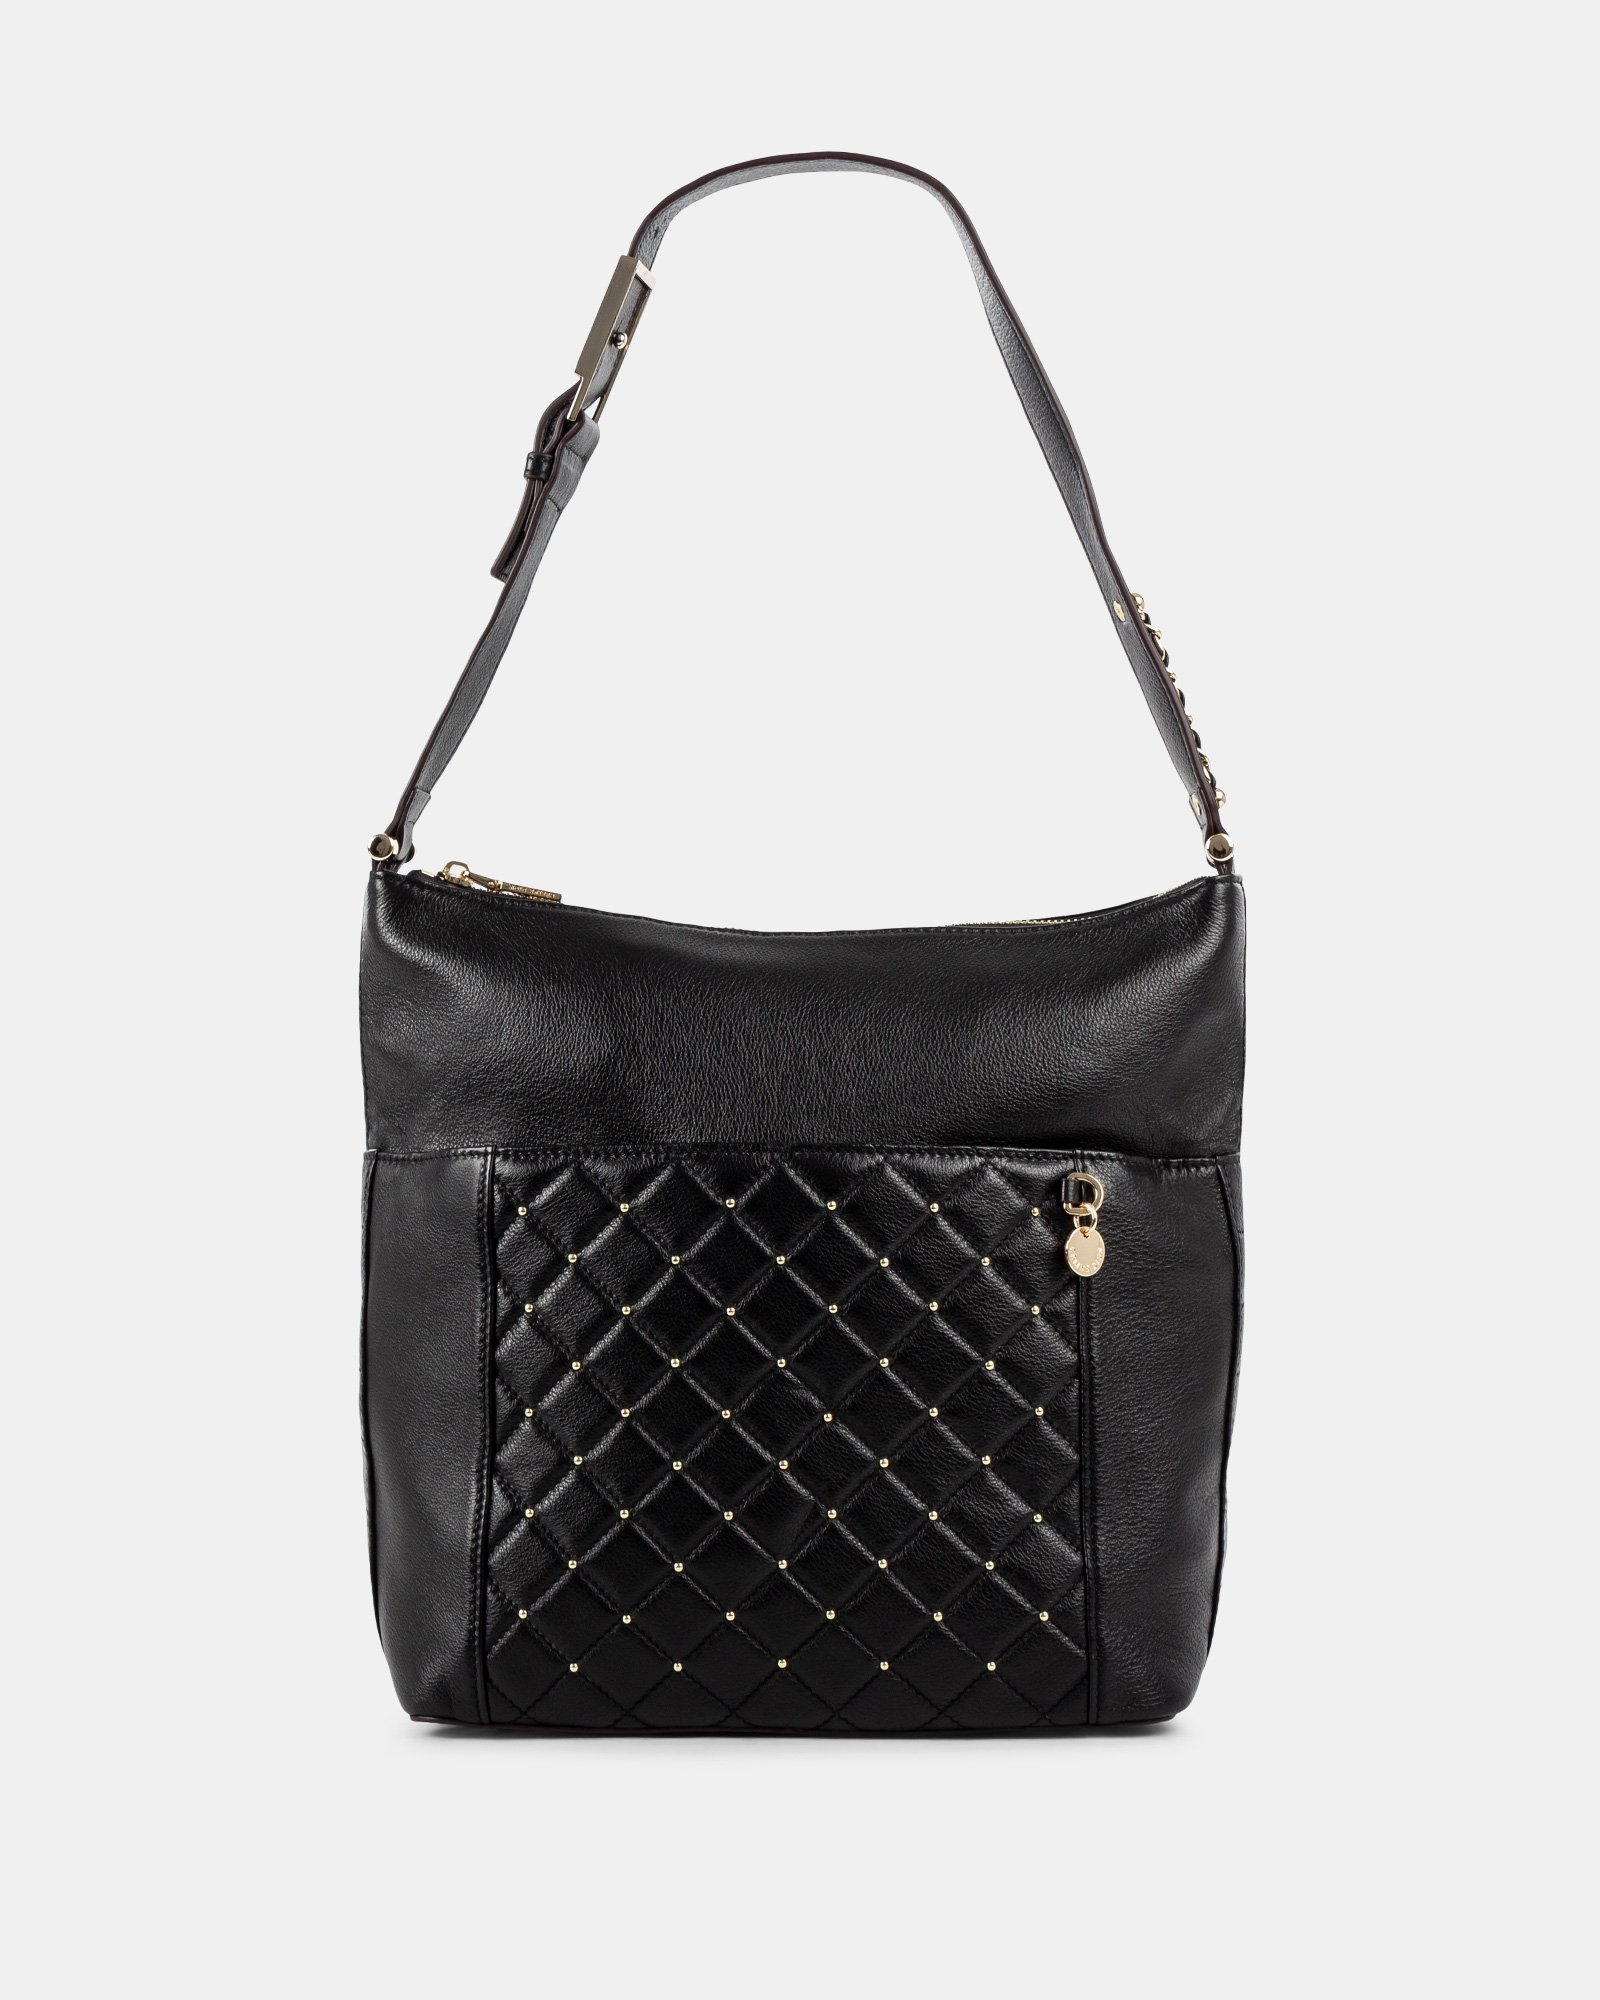 Fastoso - hobo with Front zippered pocket - Black - Céline Dion - Zoom